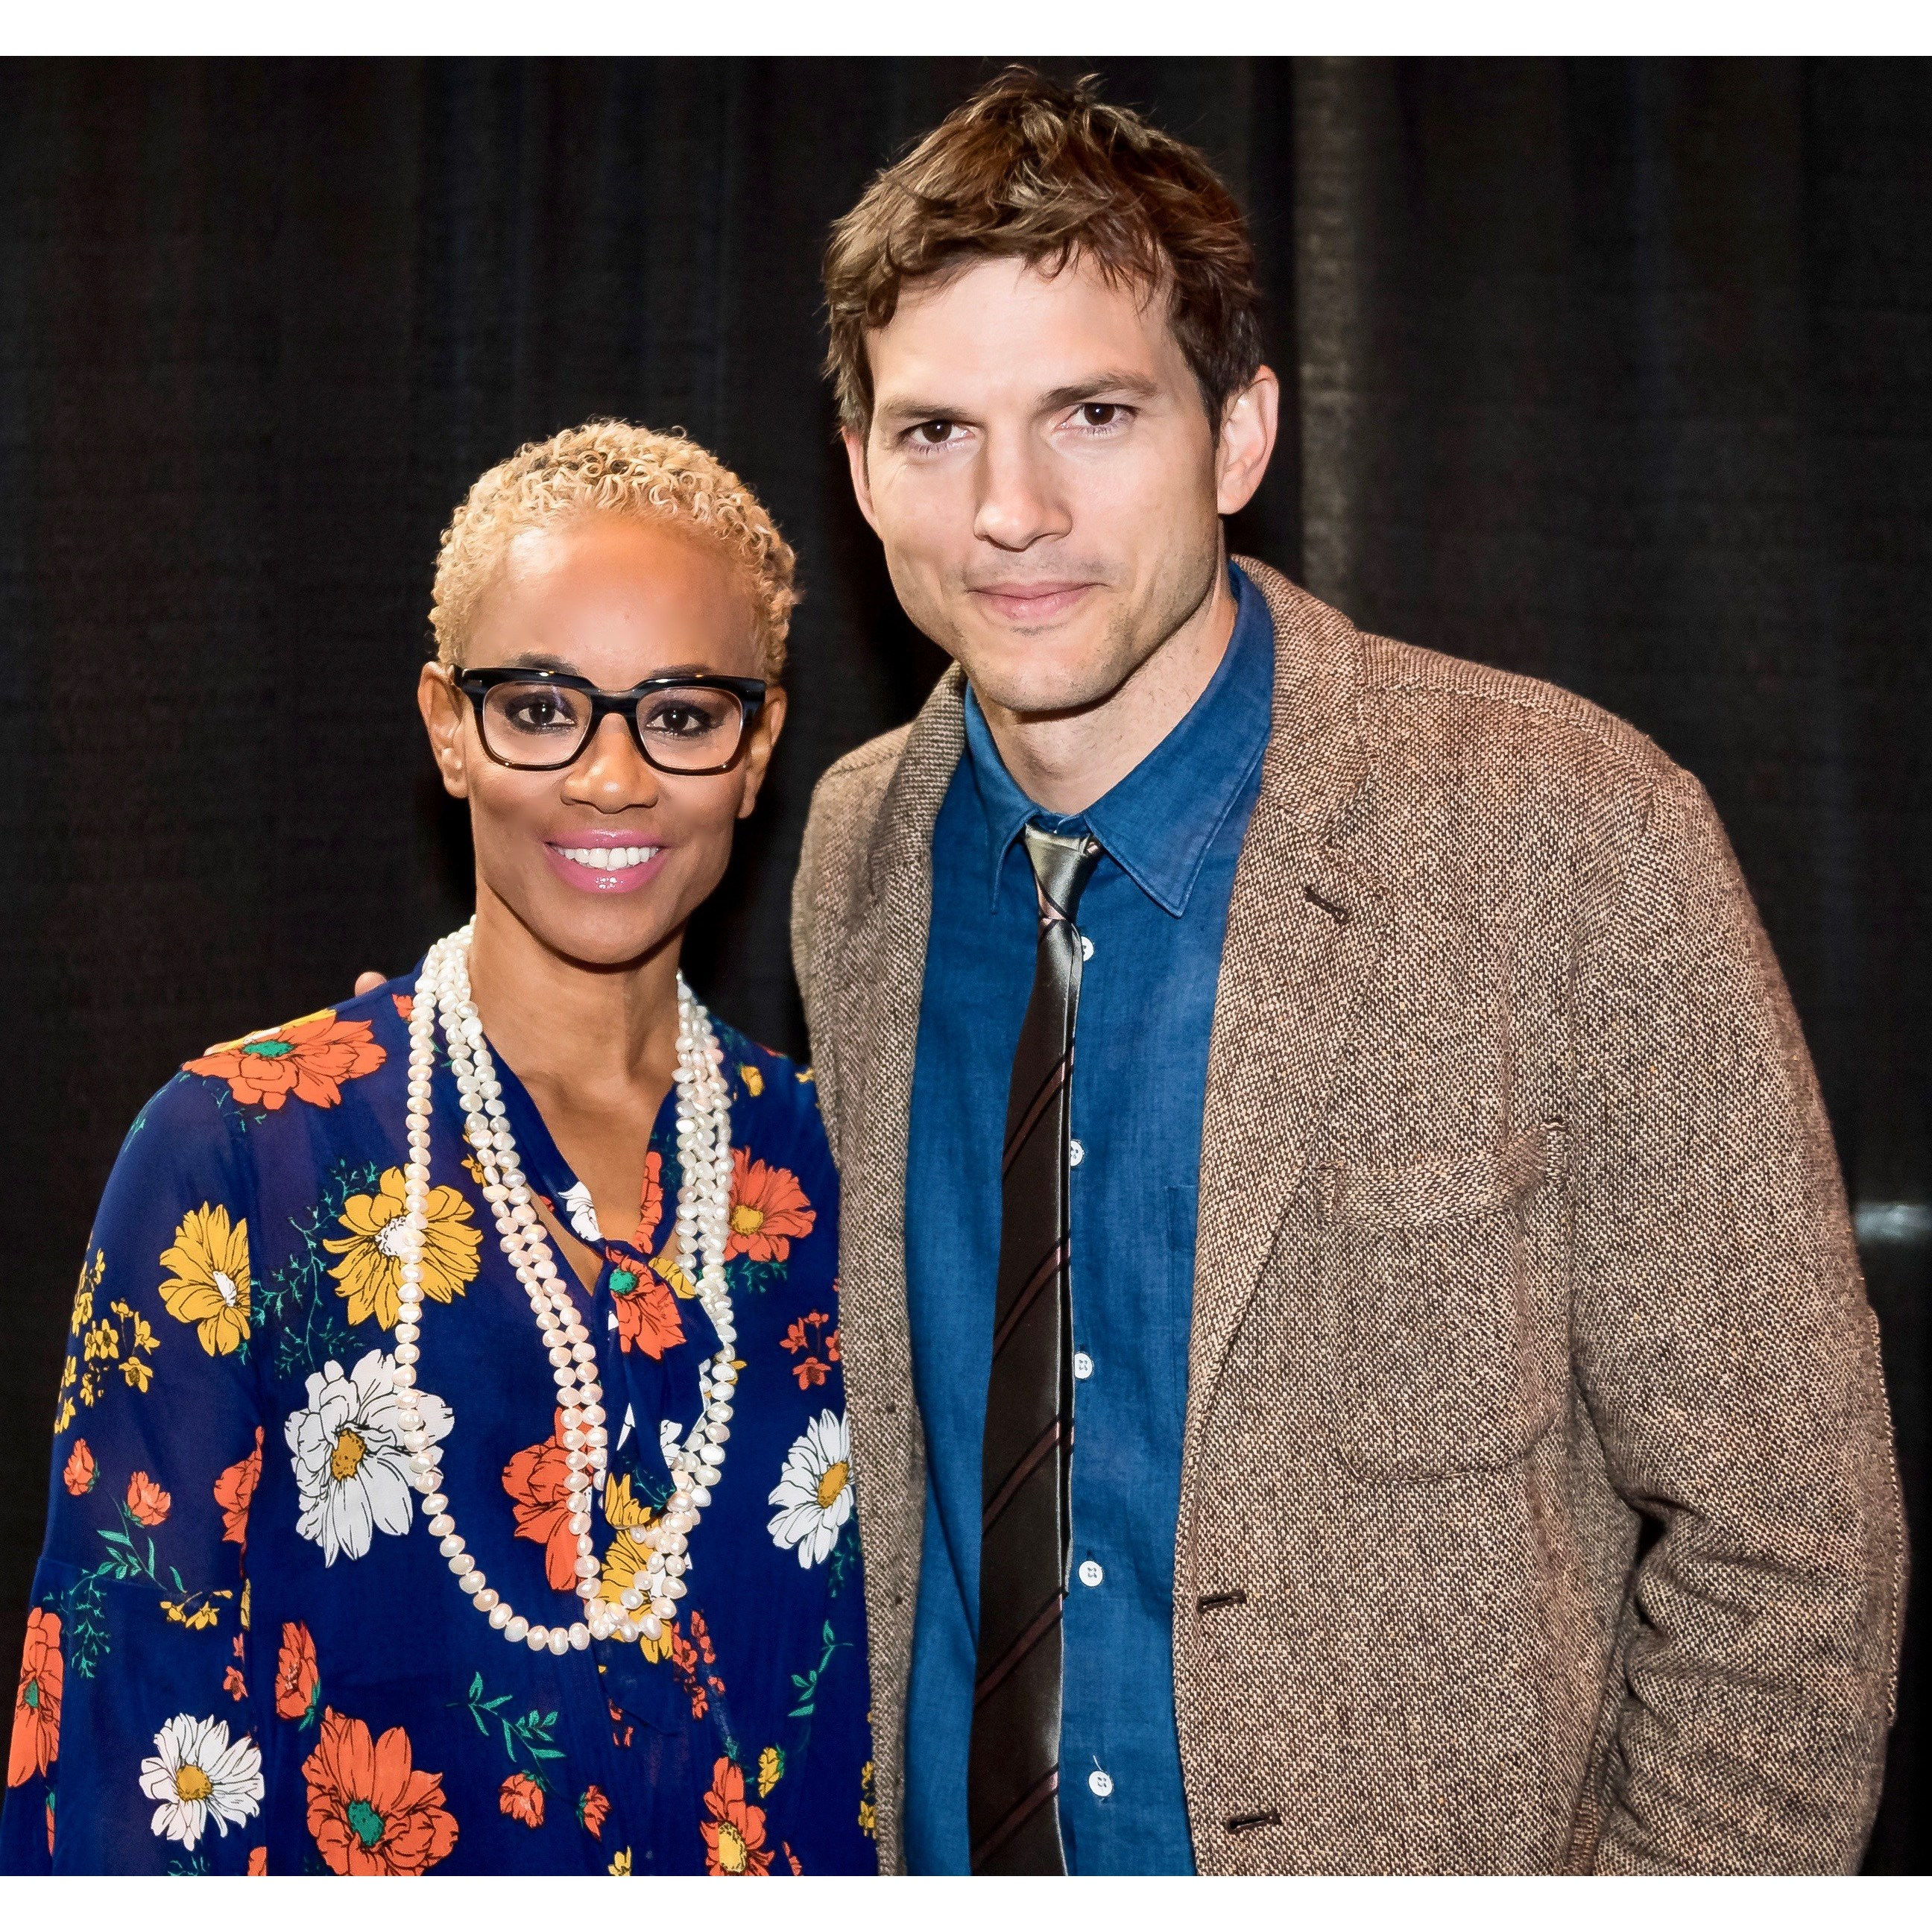 Dr. Bello and Ashton Kutcher speak at International Educational Empower 2019 Conference in Chicago.